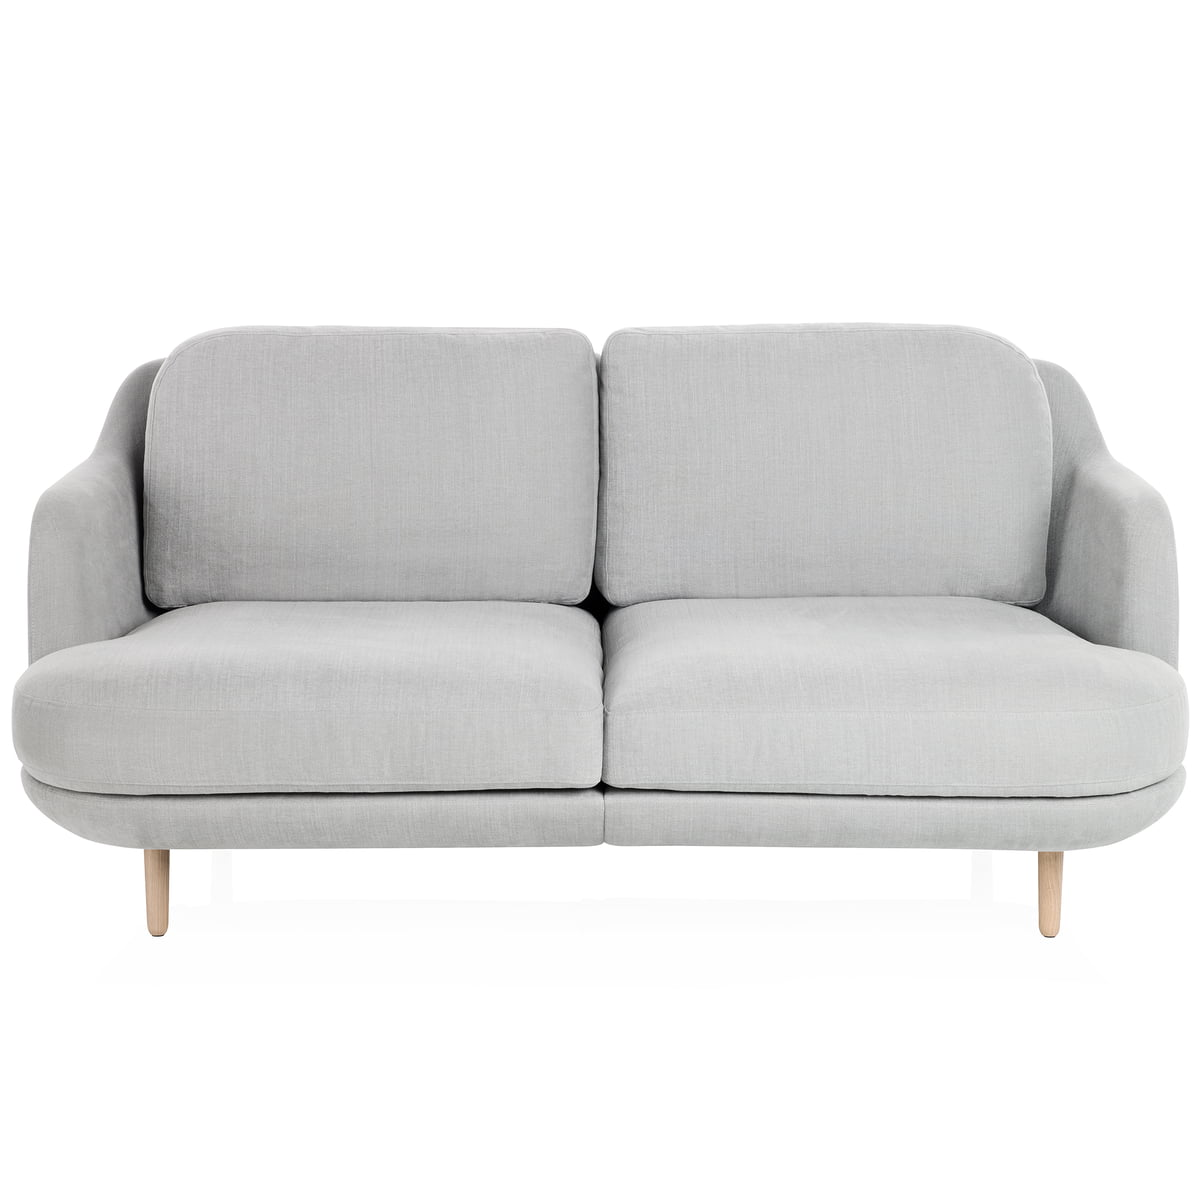 Lune Sofa With Wooden Legs By Fritz Hansen In Grey